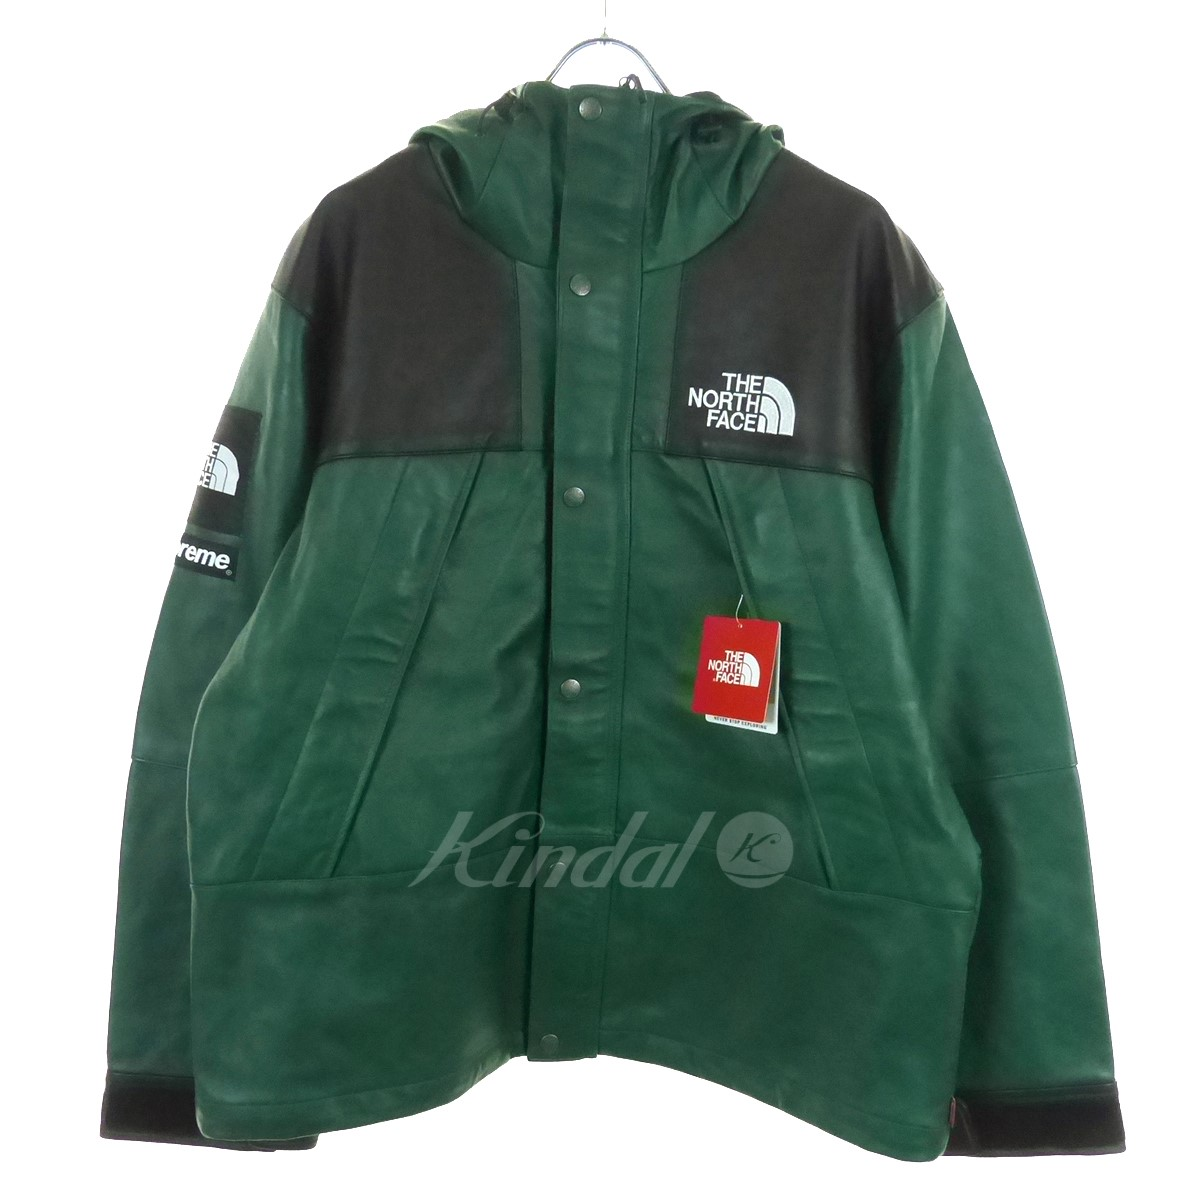 【中古】SUPREME×THE NORTH FACE Leather Mountain Parka レザーマウンテンパーカー 18AW 【送料無料】 【119884】 【KIND1550】